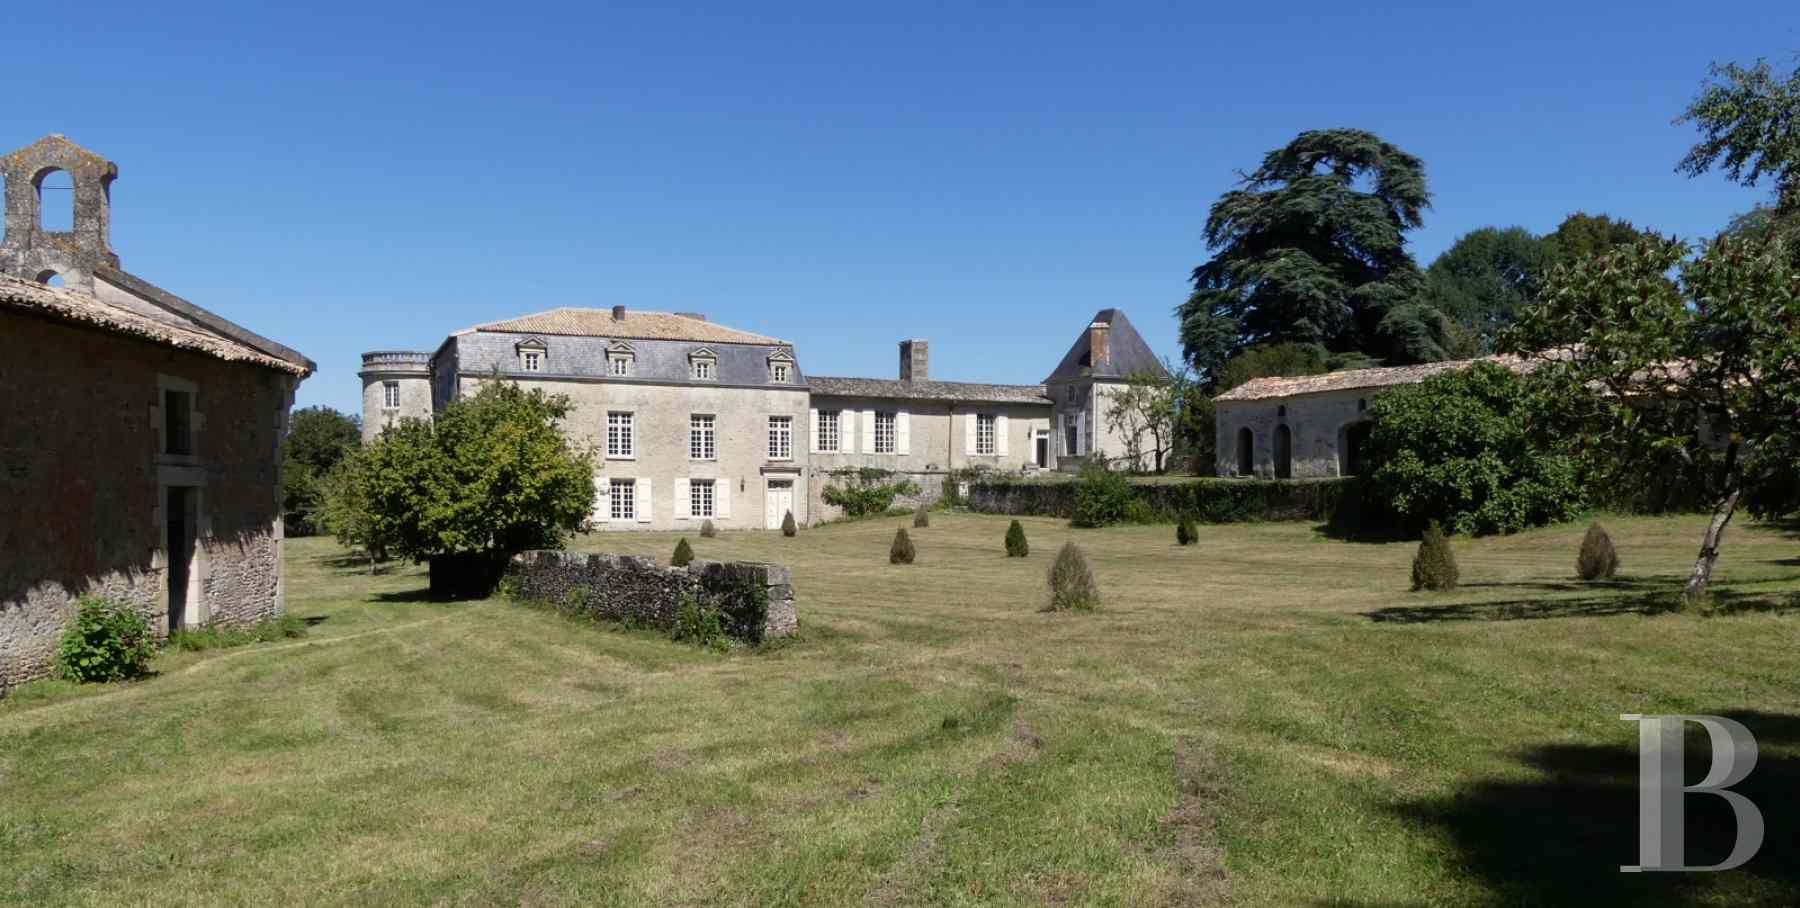 France mansions for sale poitou charentes 18th century - 2 zoom